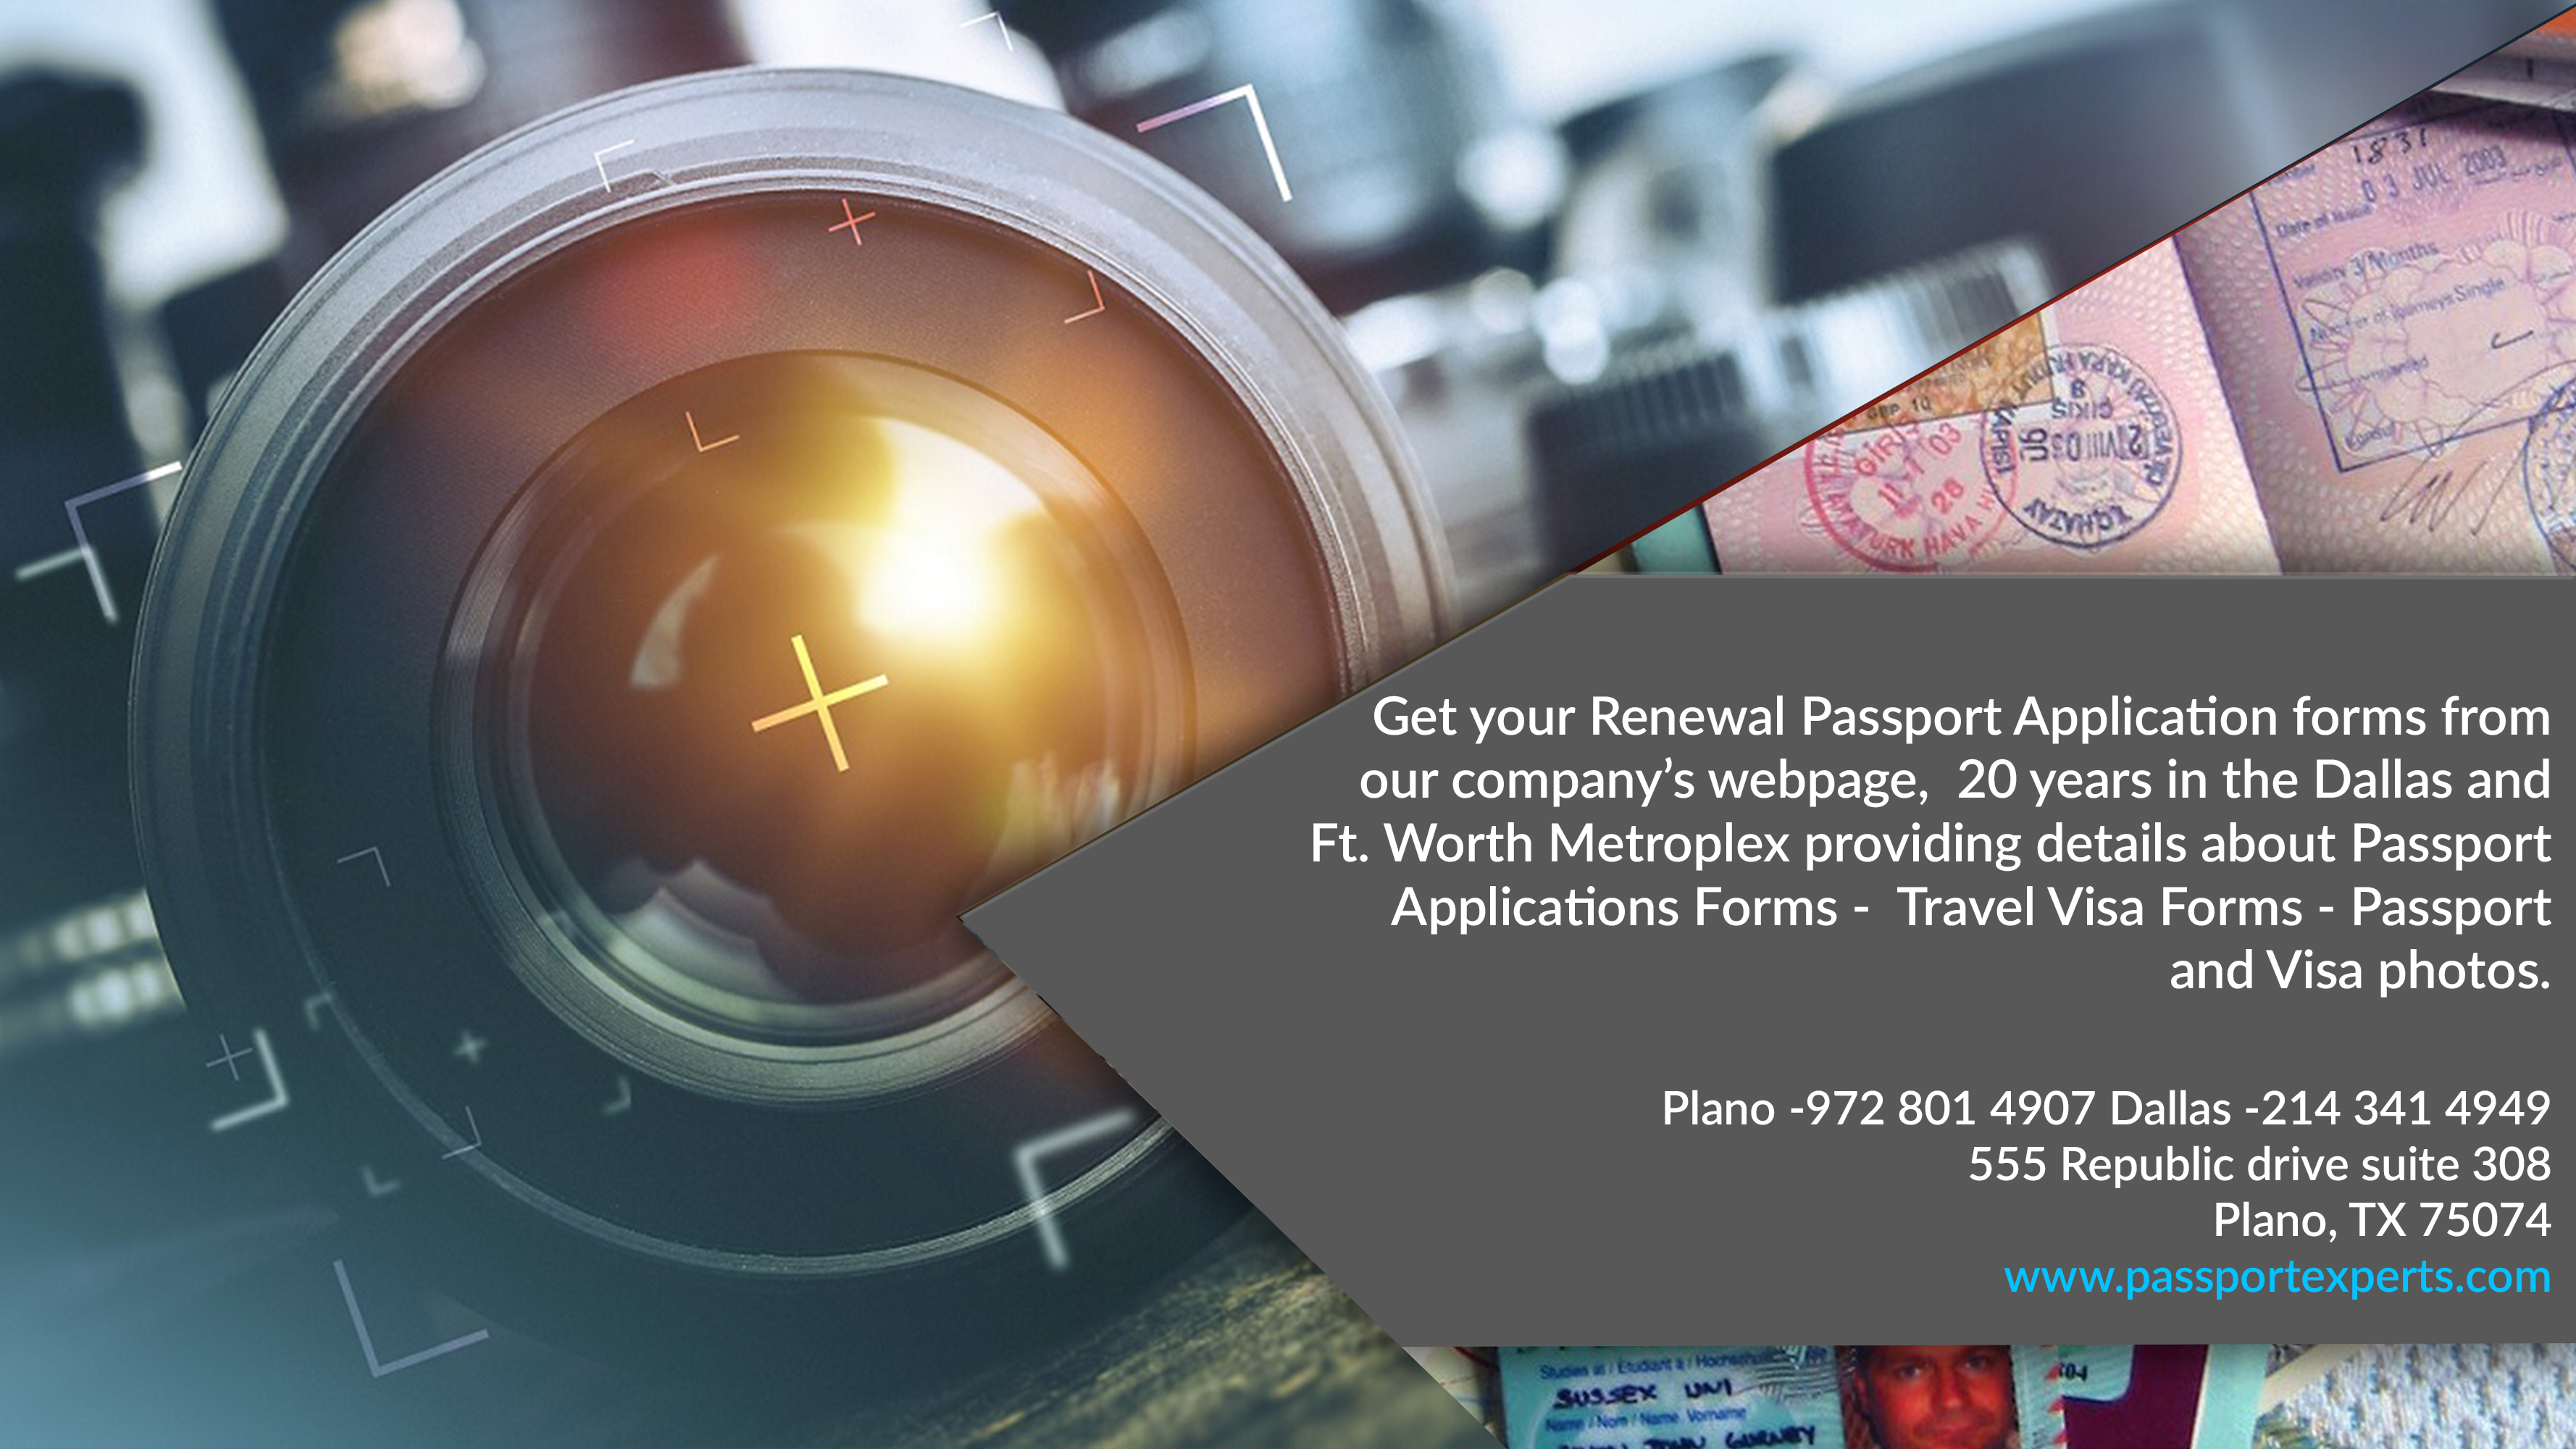 Get your Renewal Passport Application forms from our